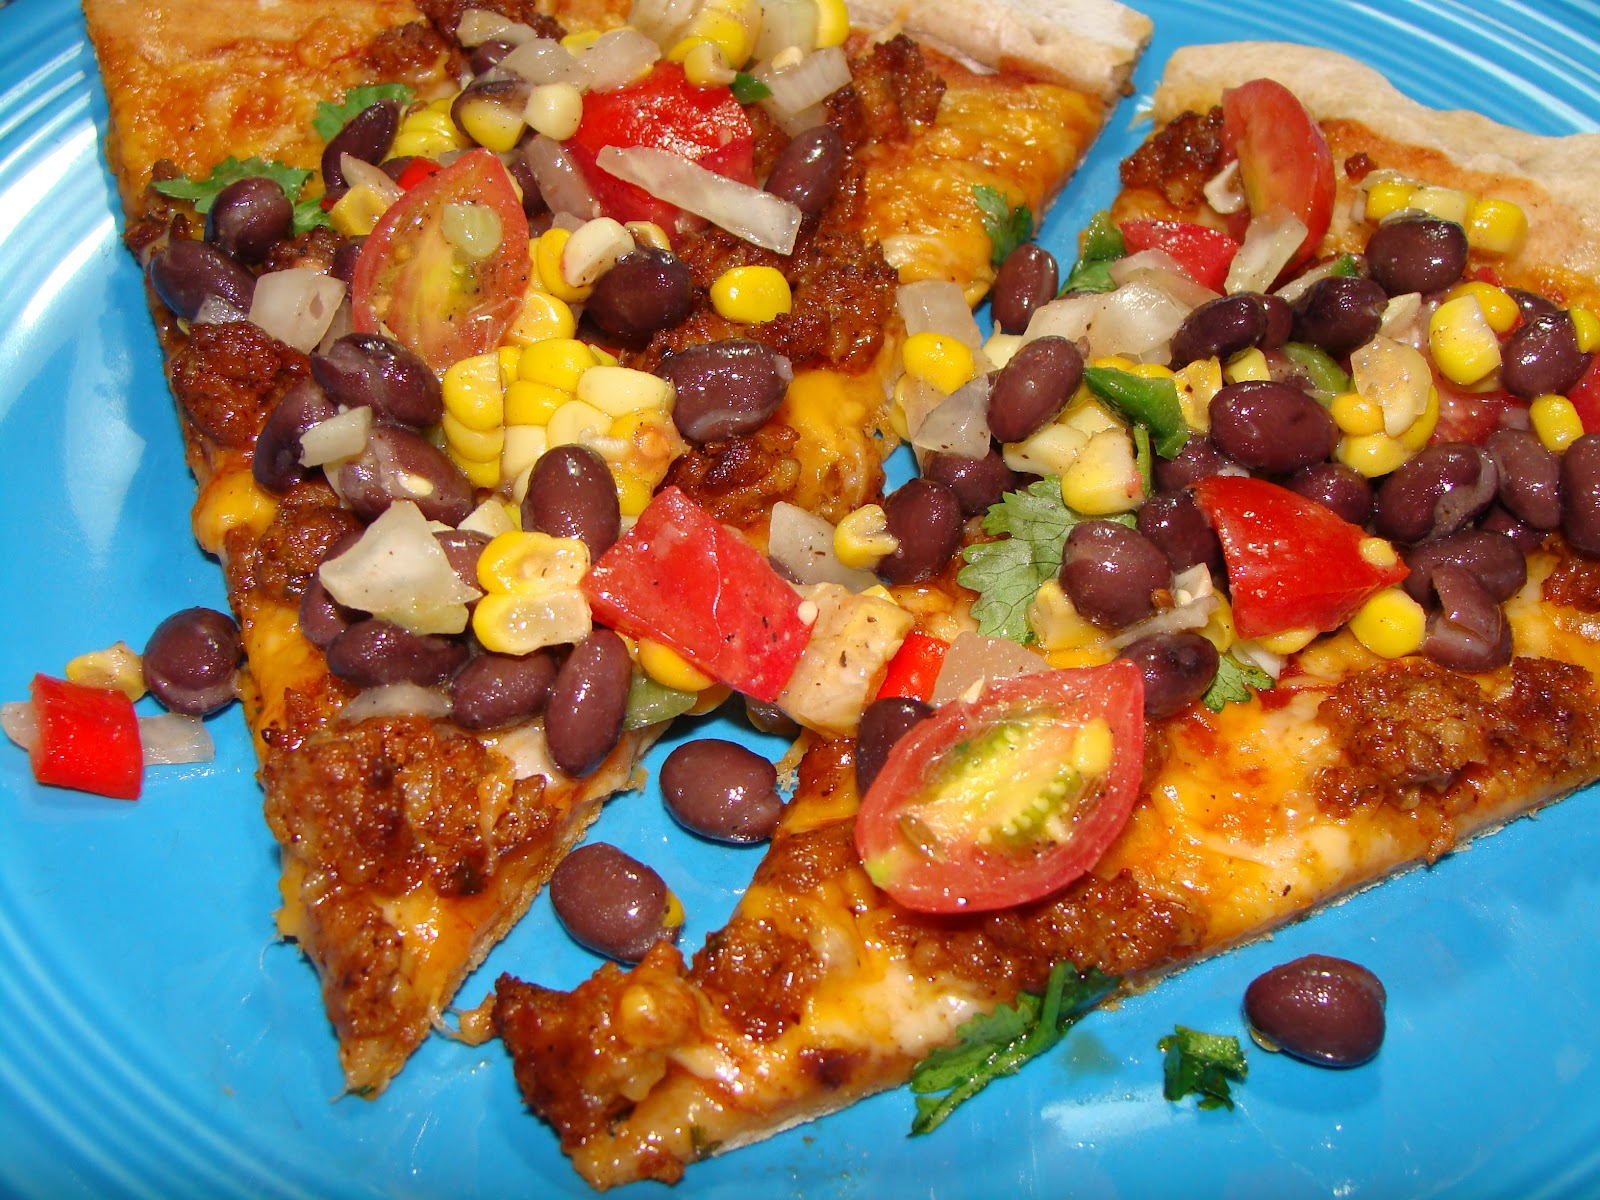 Sharon's Souvenirs: Southwestern Pizza with Black Bean and Corn Relish